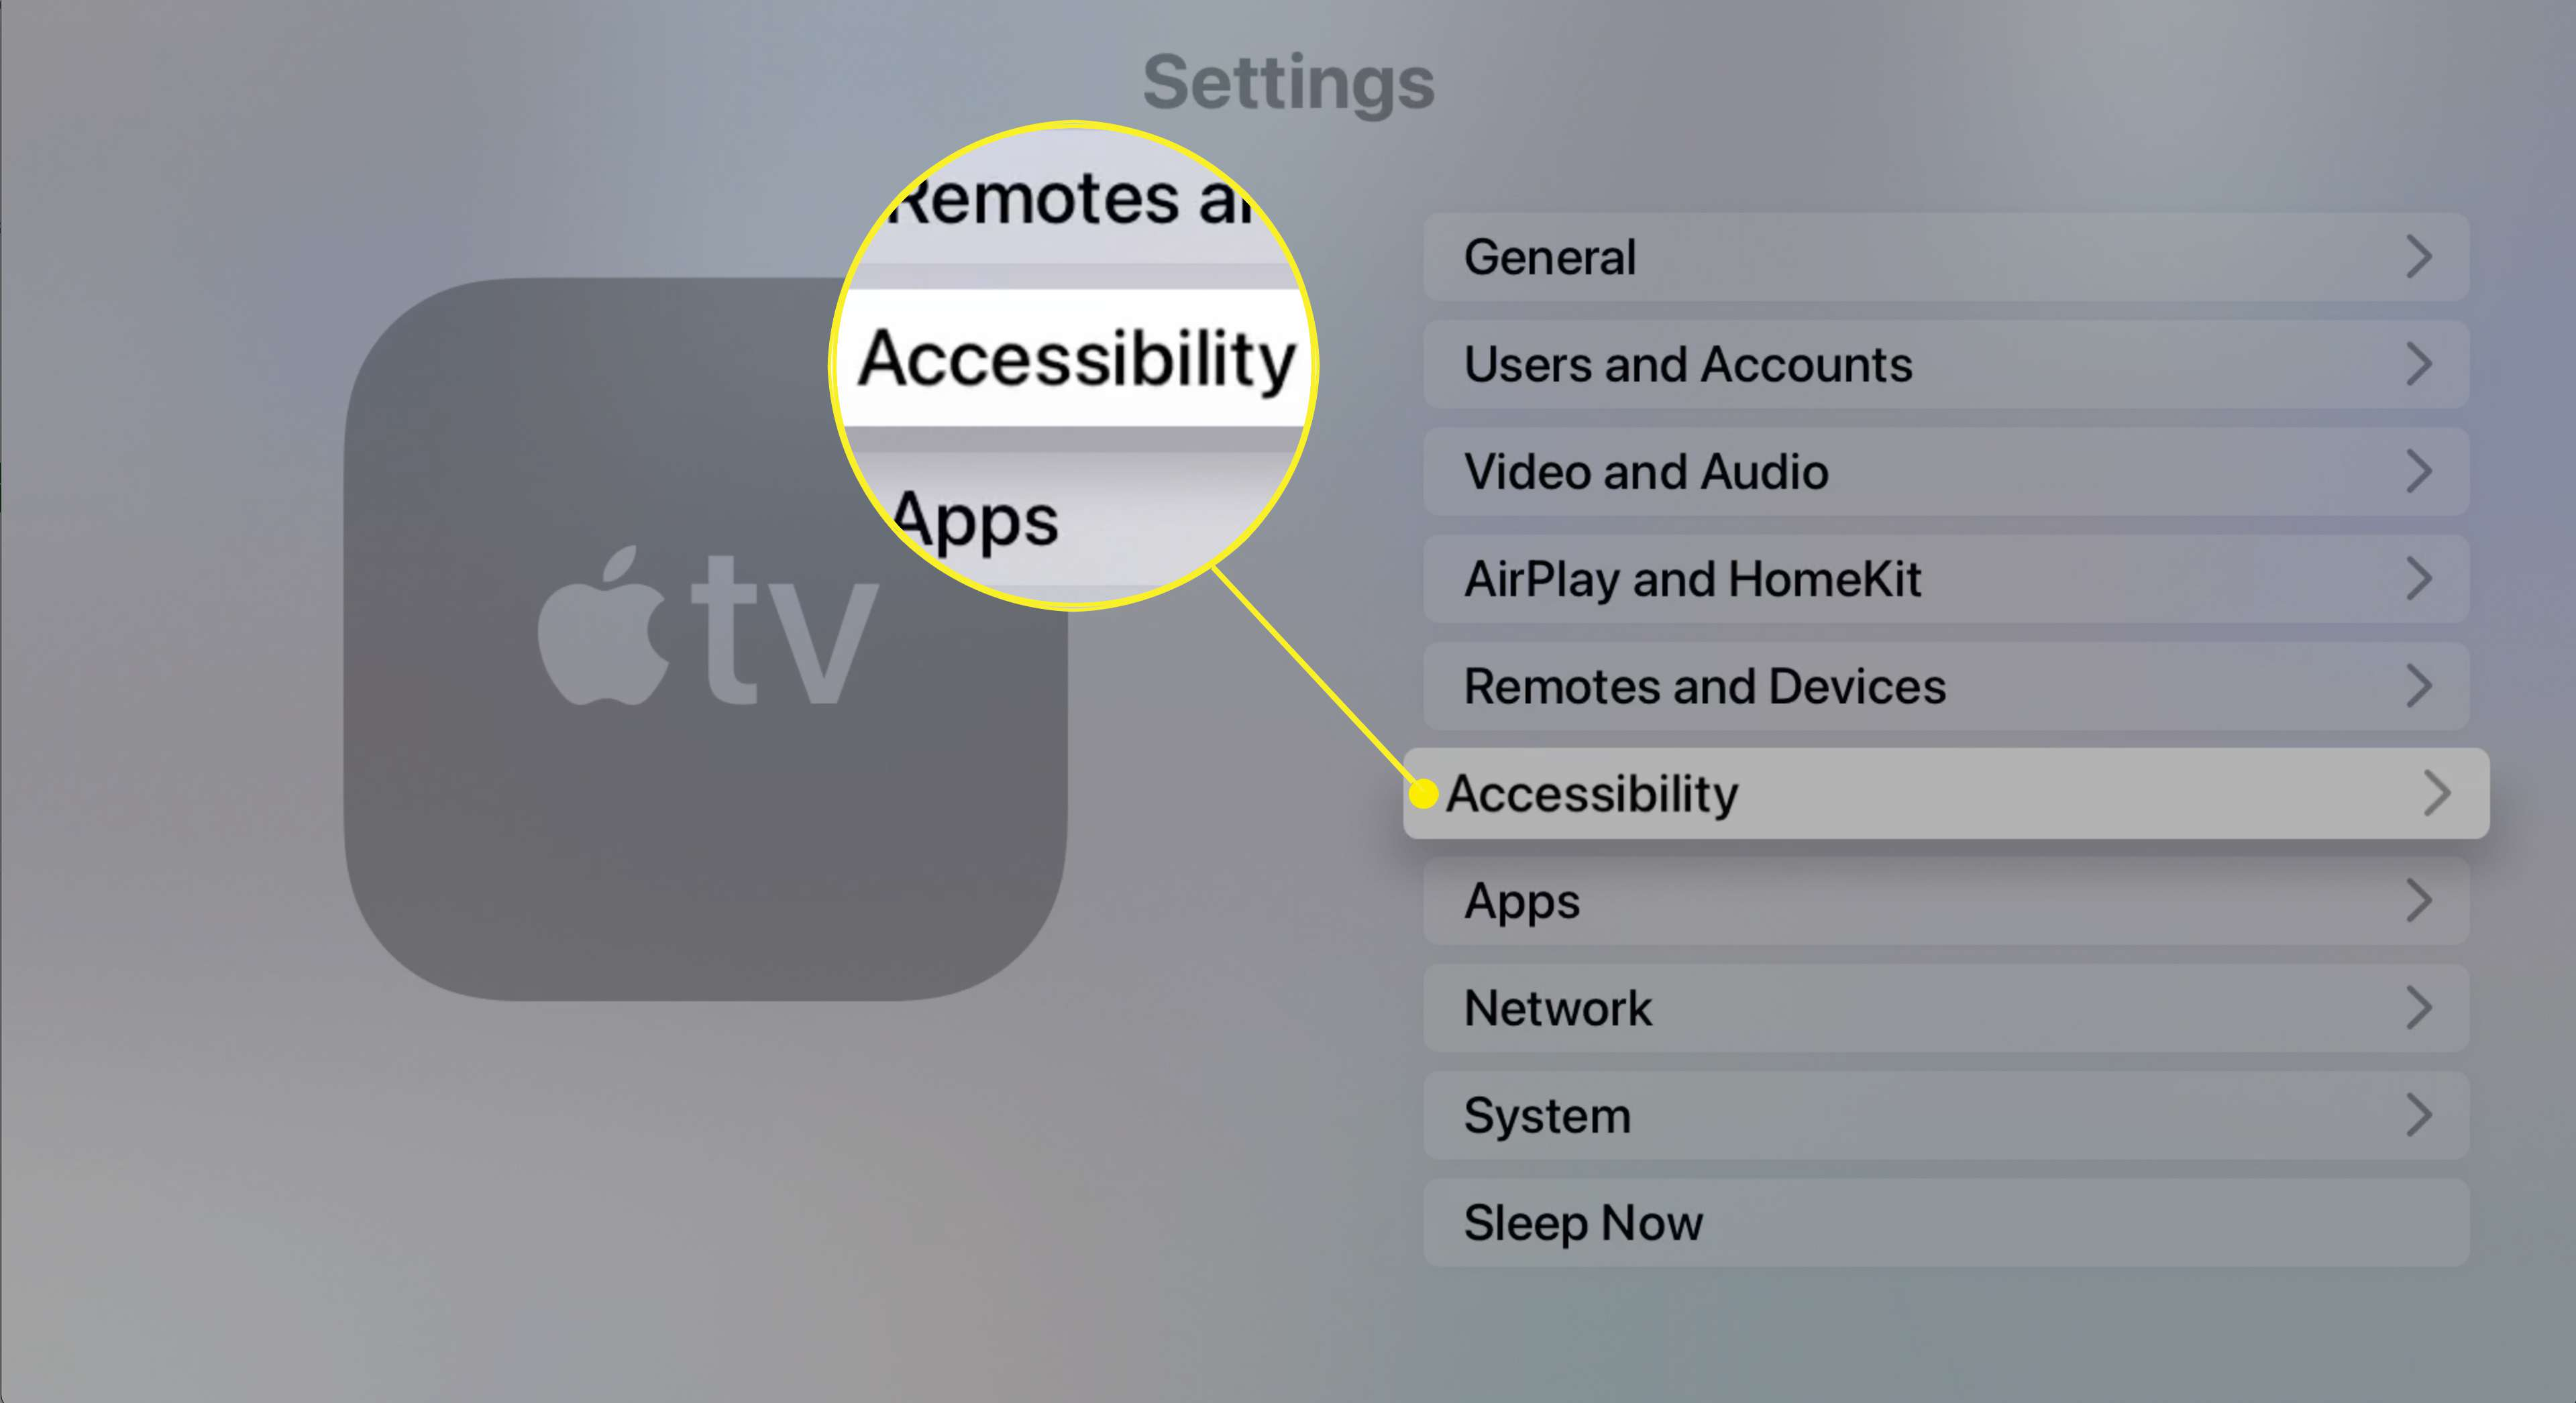 The Accessibility setting on Apple TV